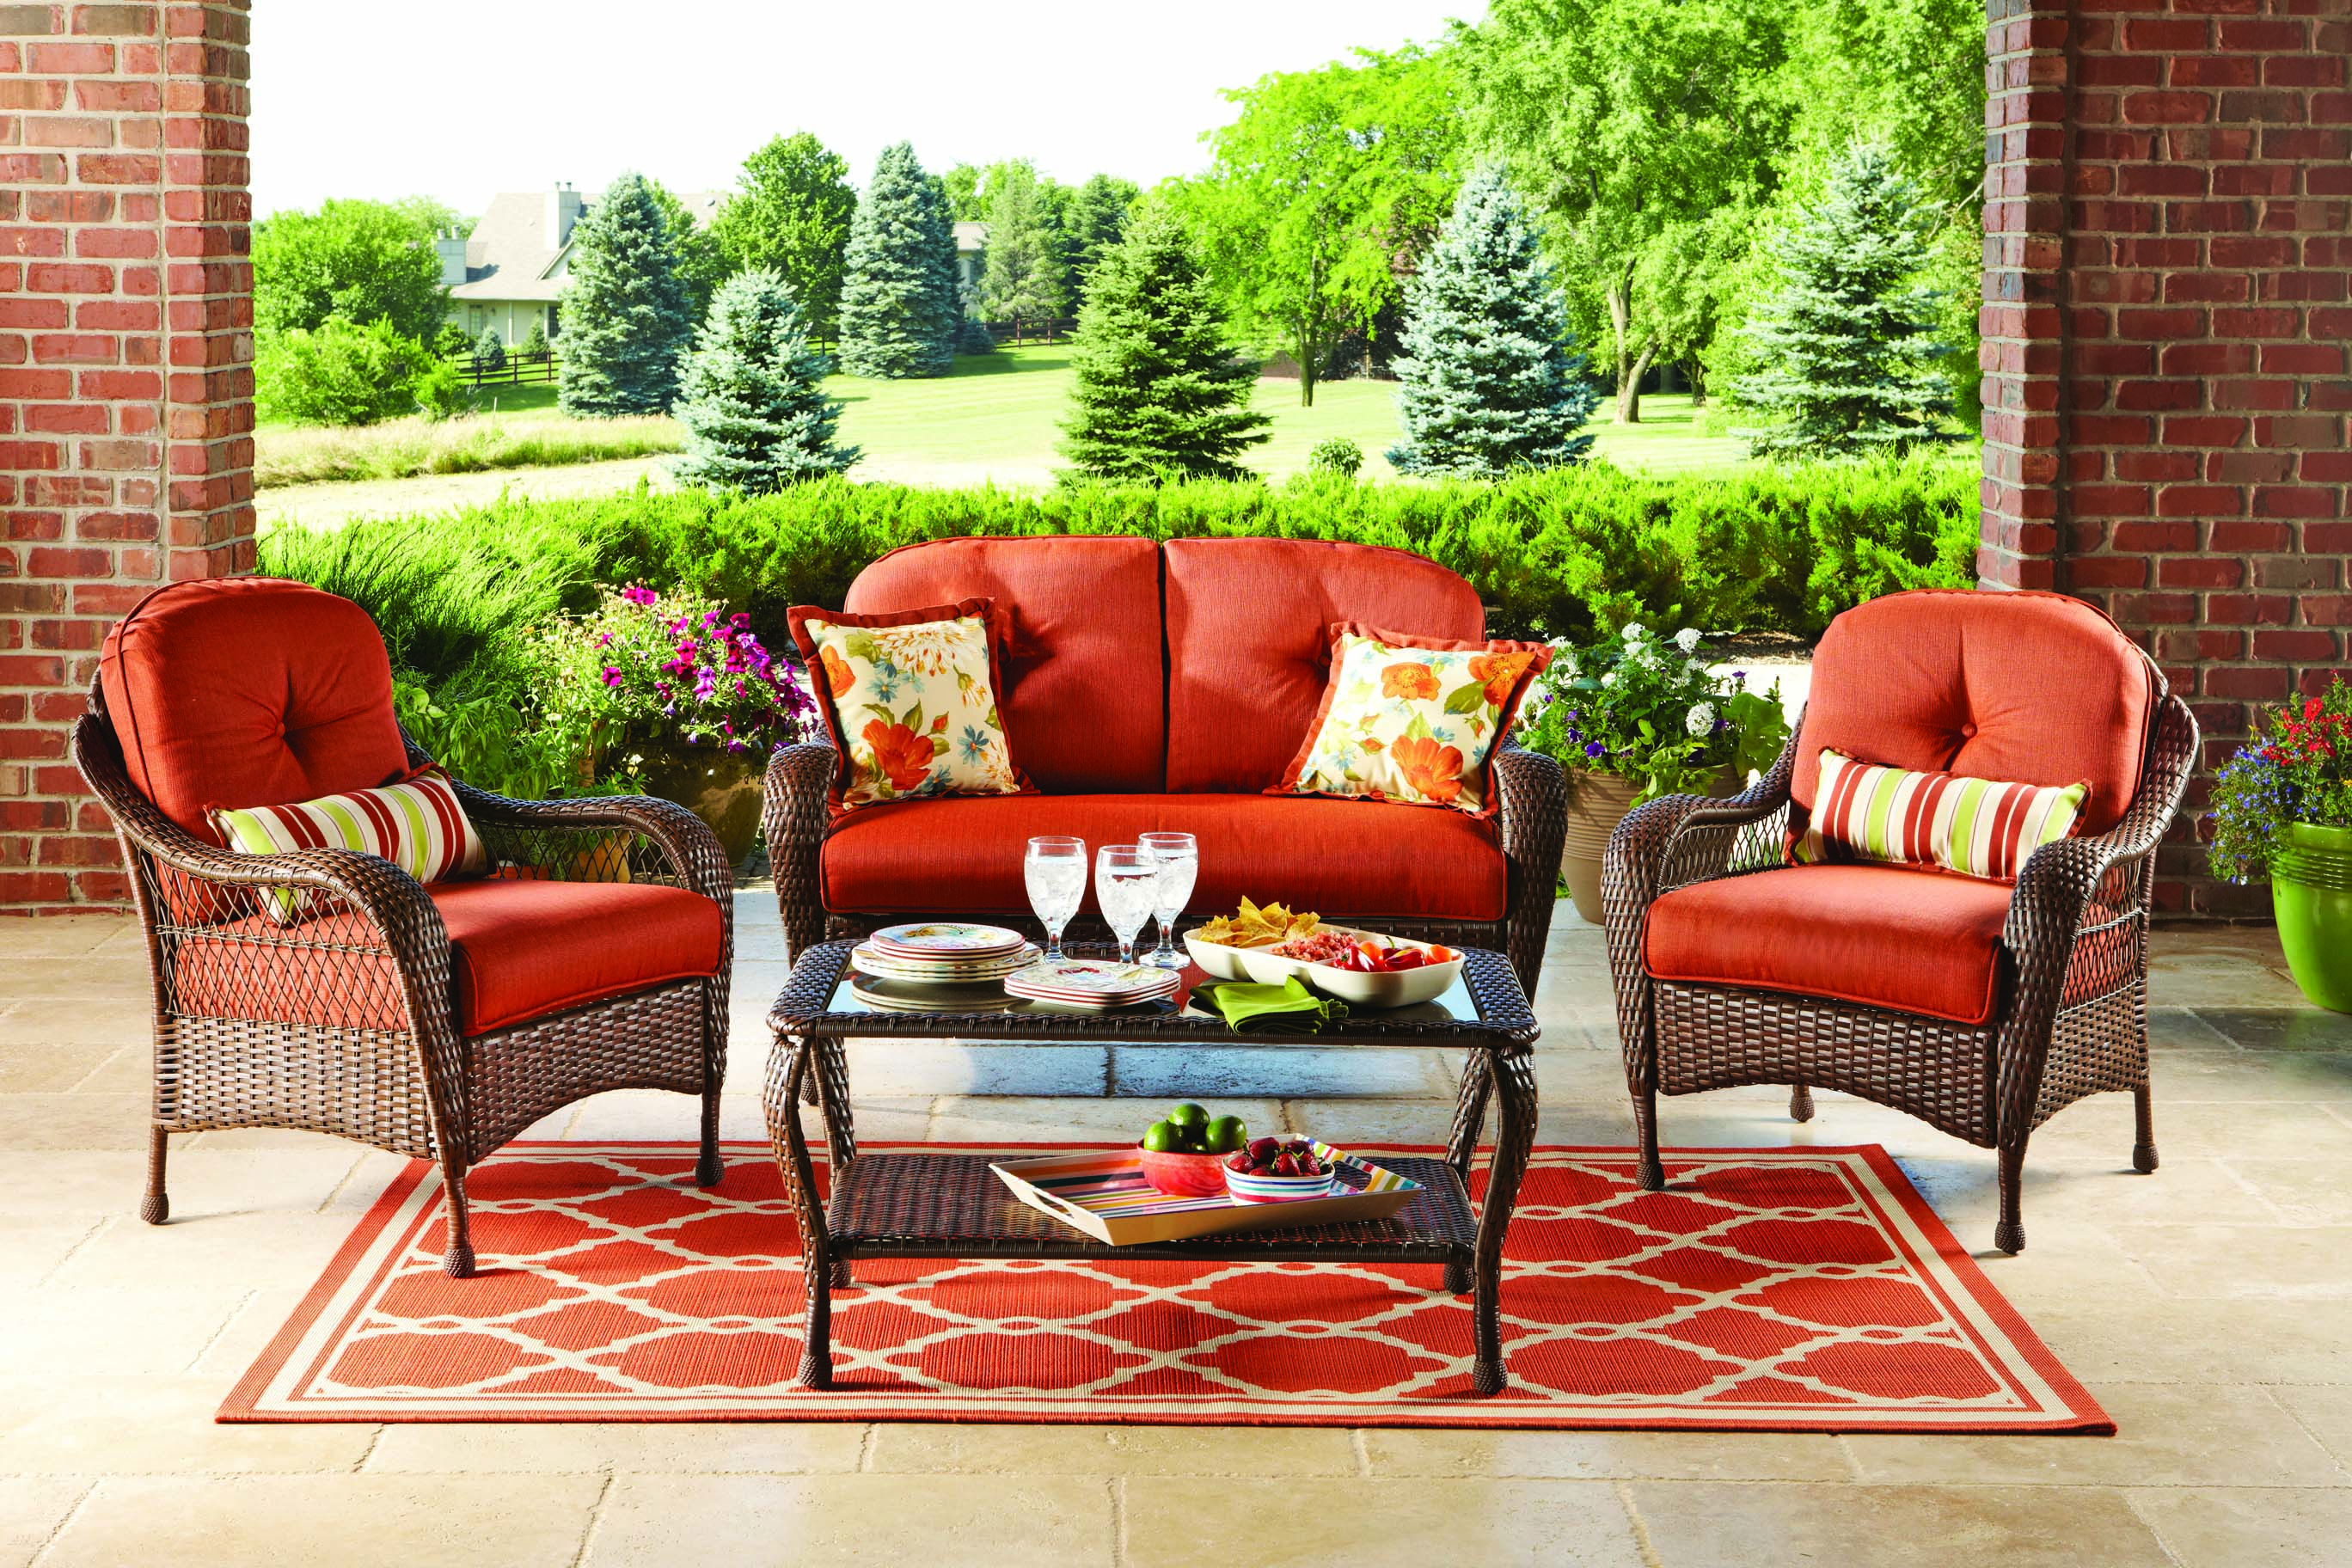 Better Homes And Gardens Replacement Cushions For Patio Furniture